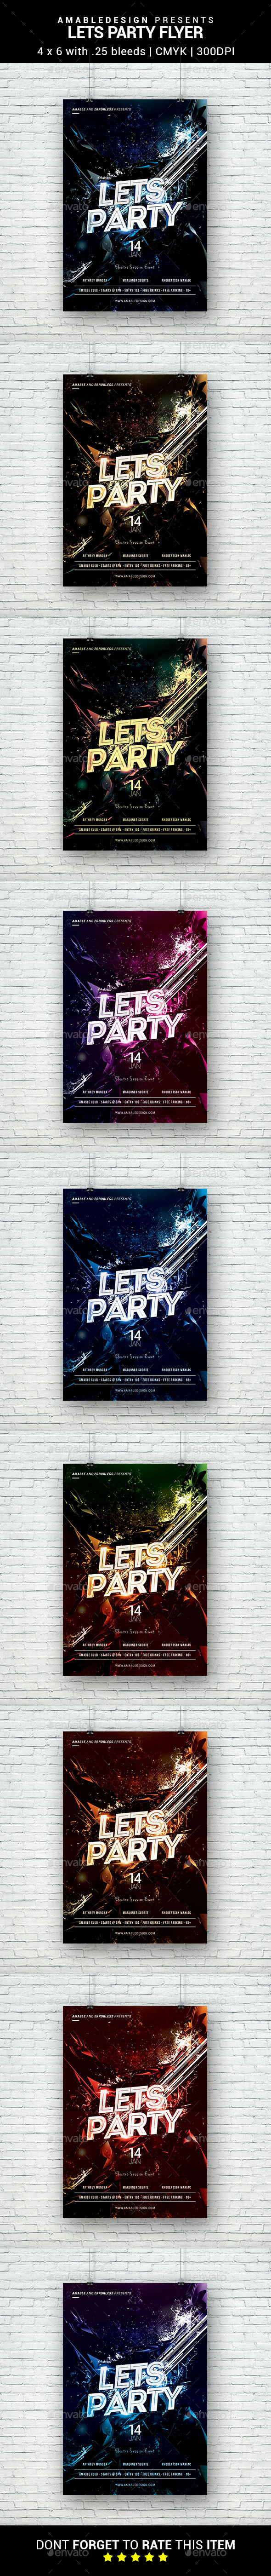 Lets Party Flyer - Clubs & Parties Events